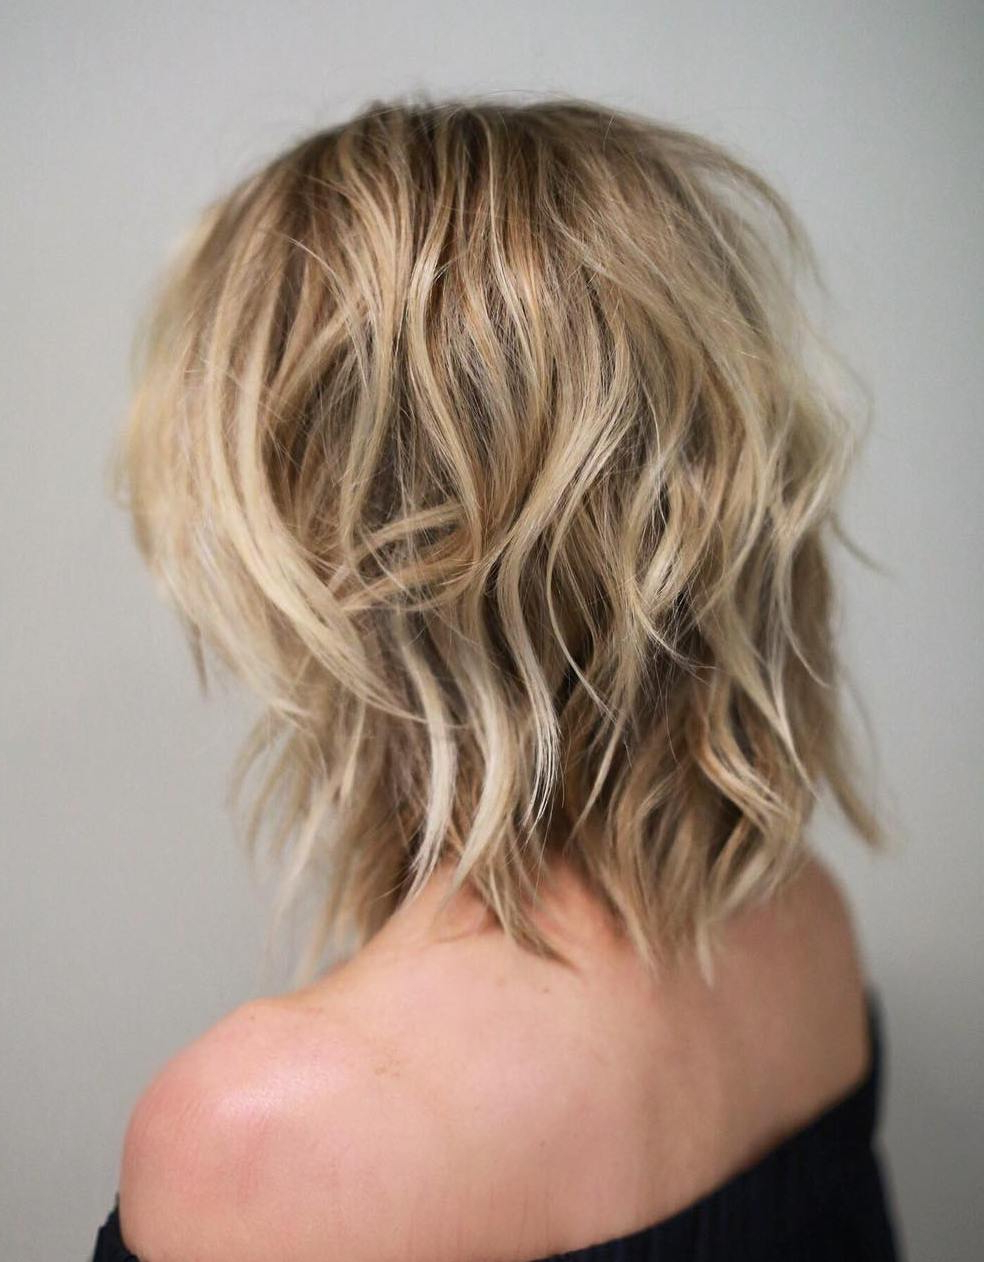 50 Best Variations Of A Medium Shag Haircut For Your Distinctive Style Inside Messy Shaggy Inverted Bob Hairstyles With Subtle Highlights (View 13 of 20)